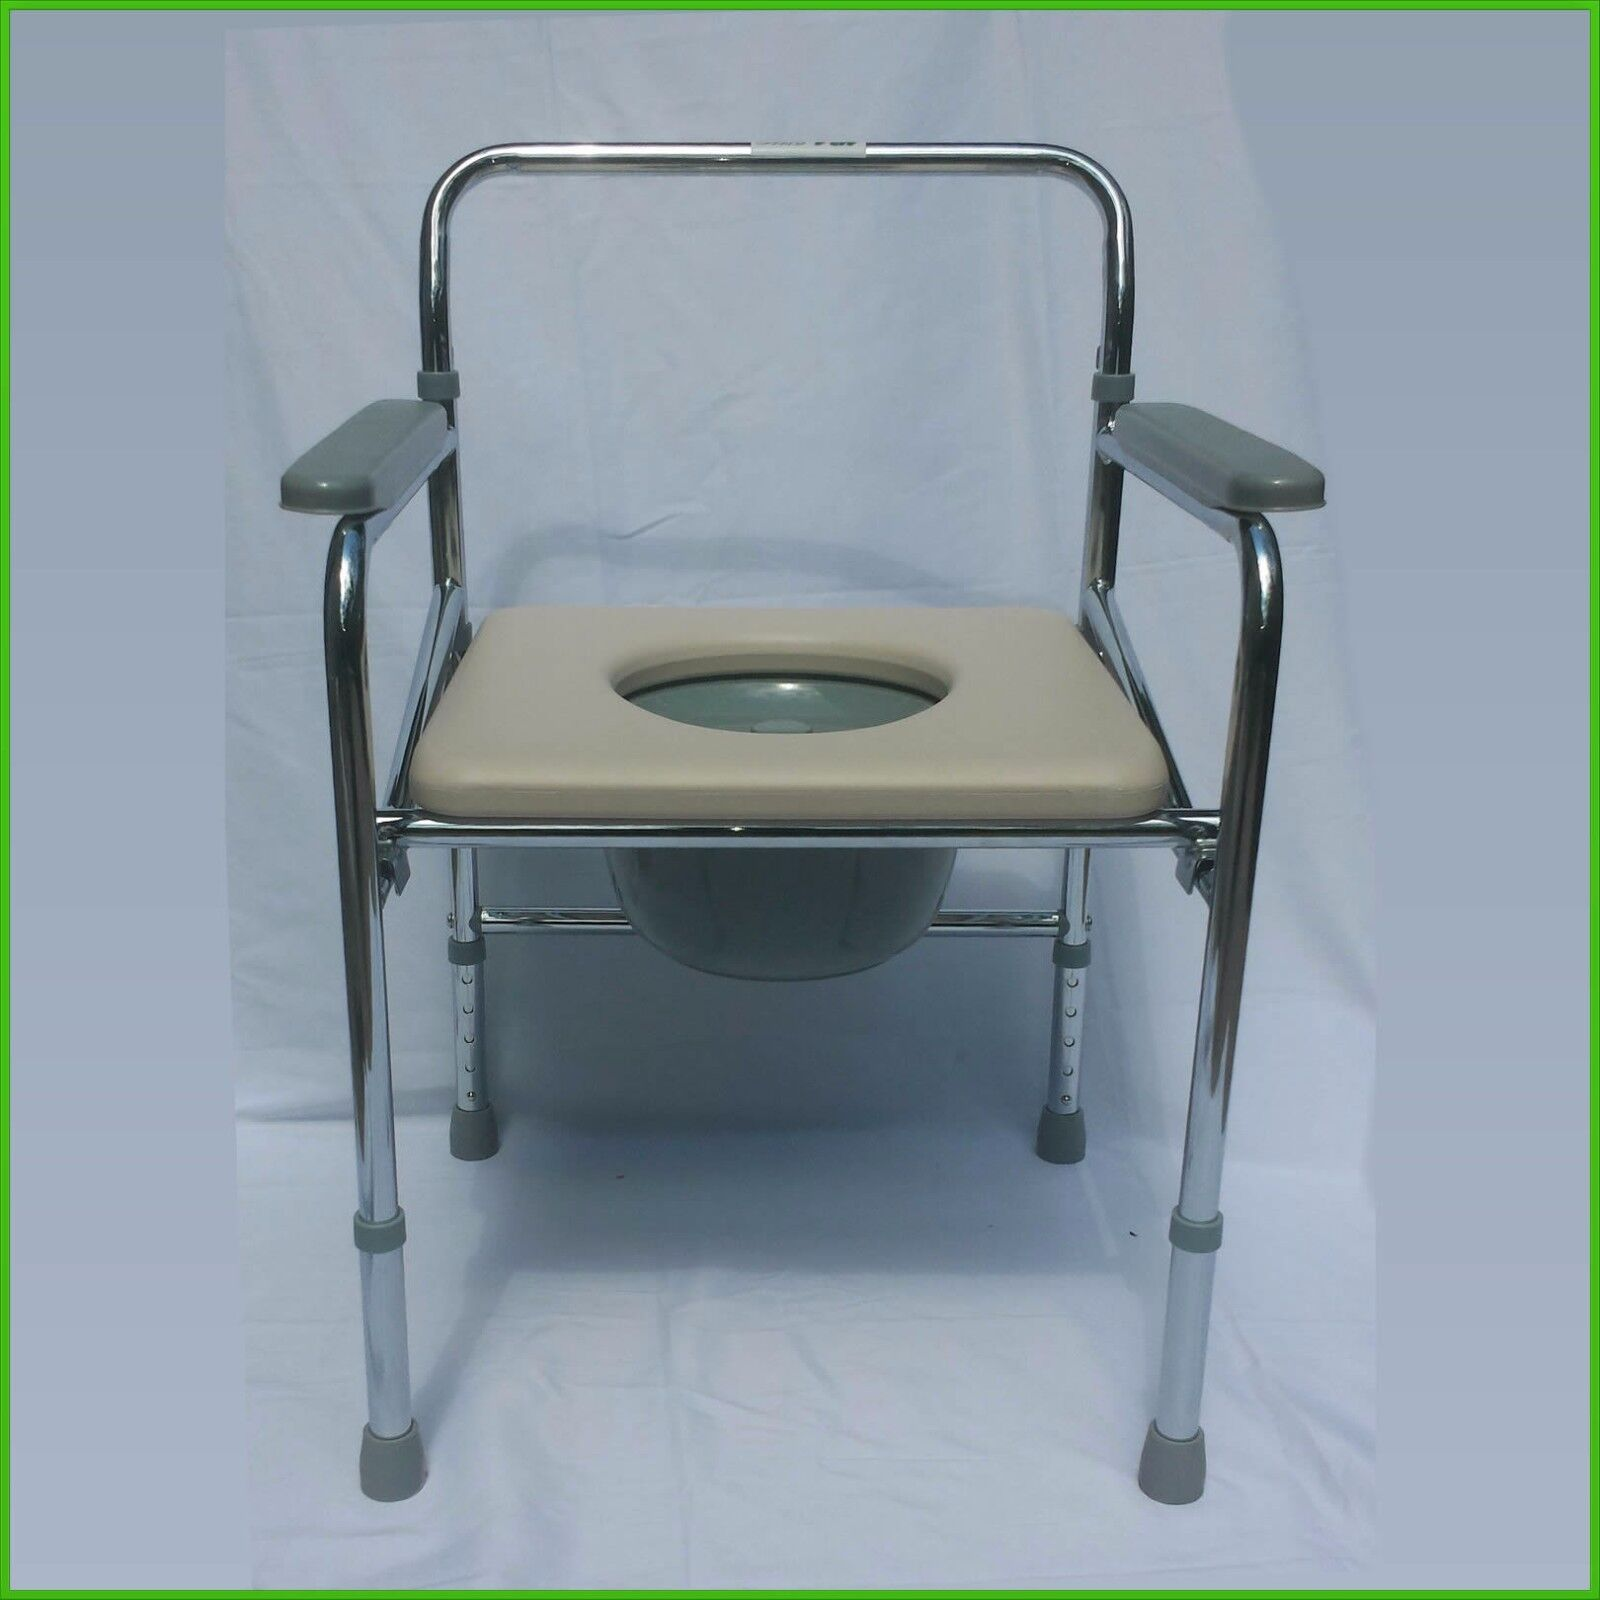 Bedside toilet commode | Health Care | Compare Prices at Nextag